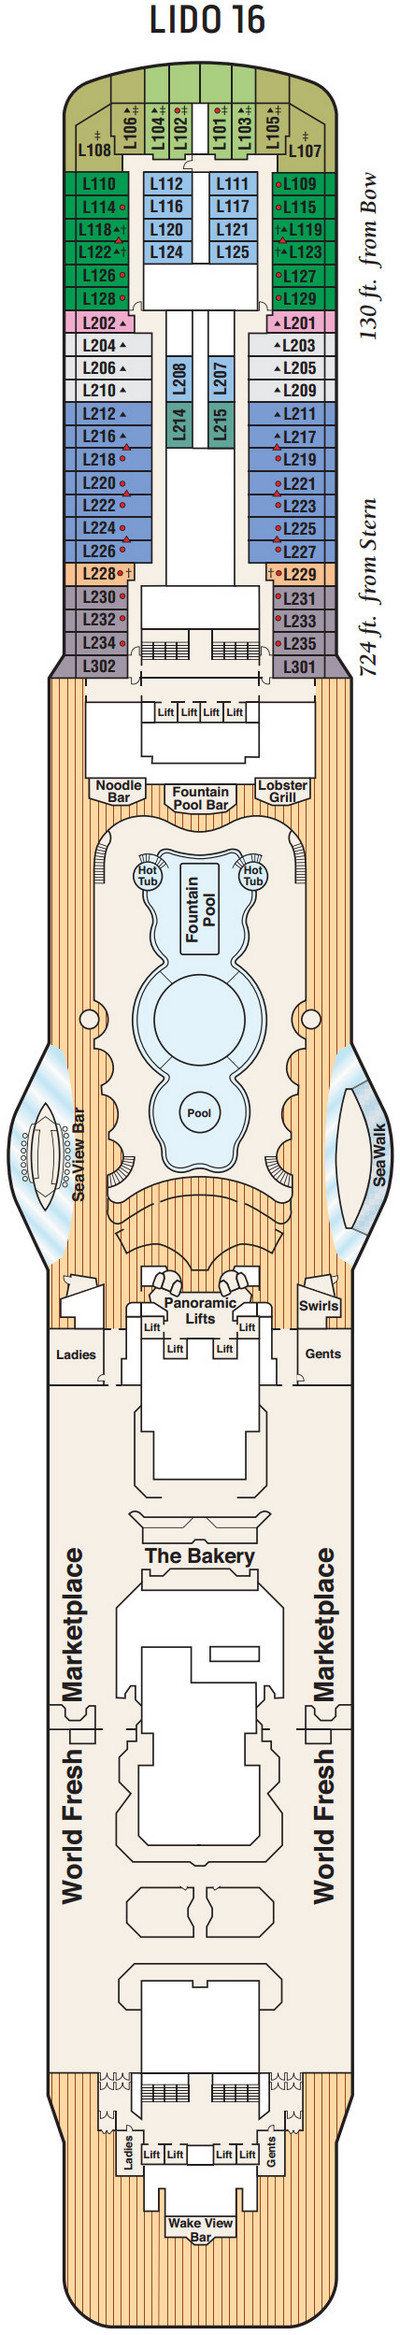 Majestic Princess Deck 16 - Lido layout